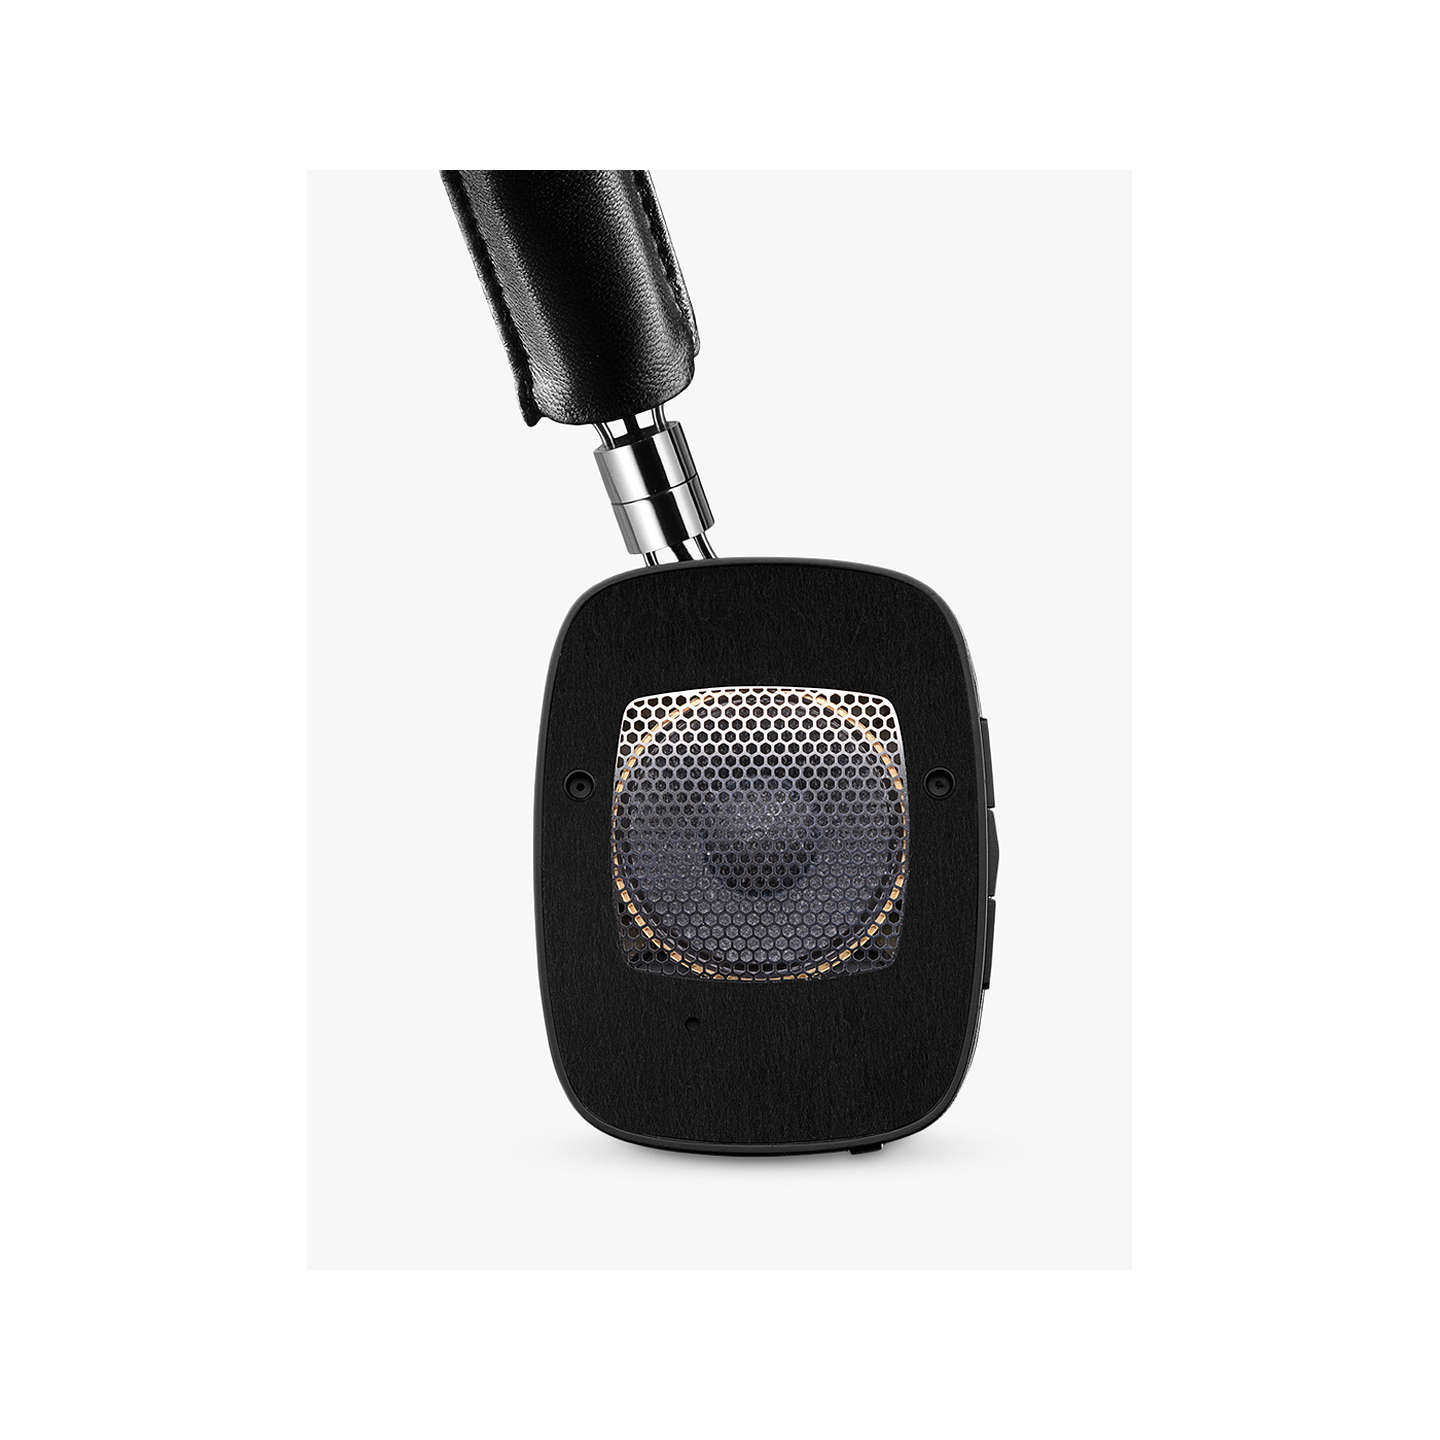 BuyBowers & Wilkins P5 Wireless On-Ear Headphones, Black Online at johnlewis.com